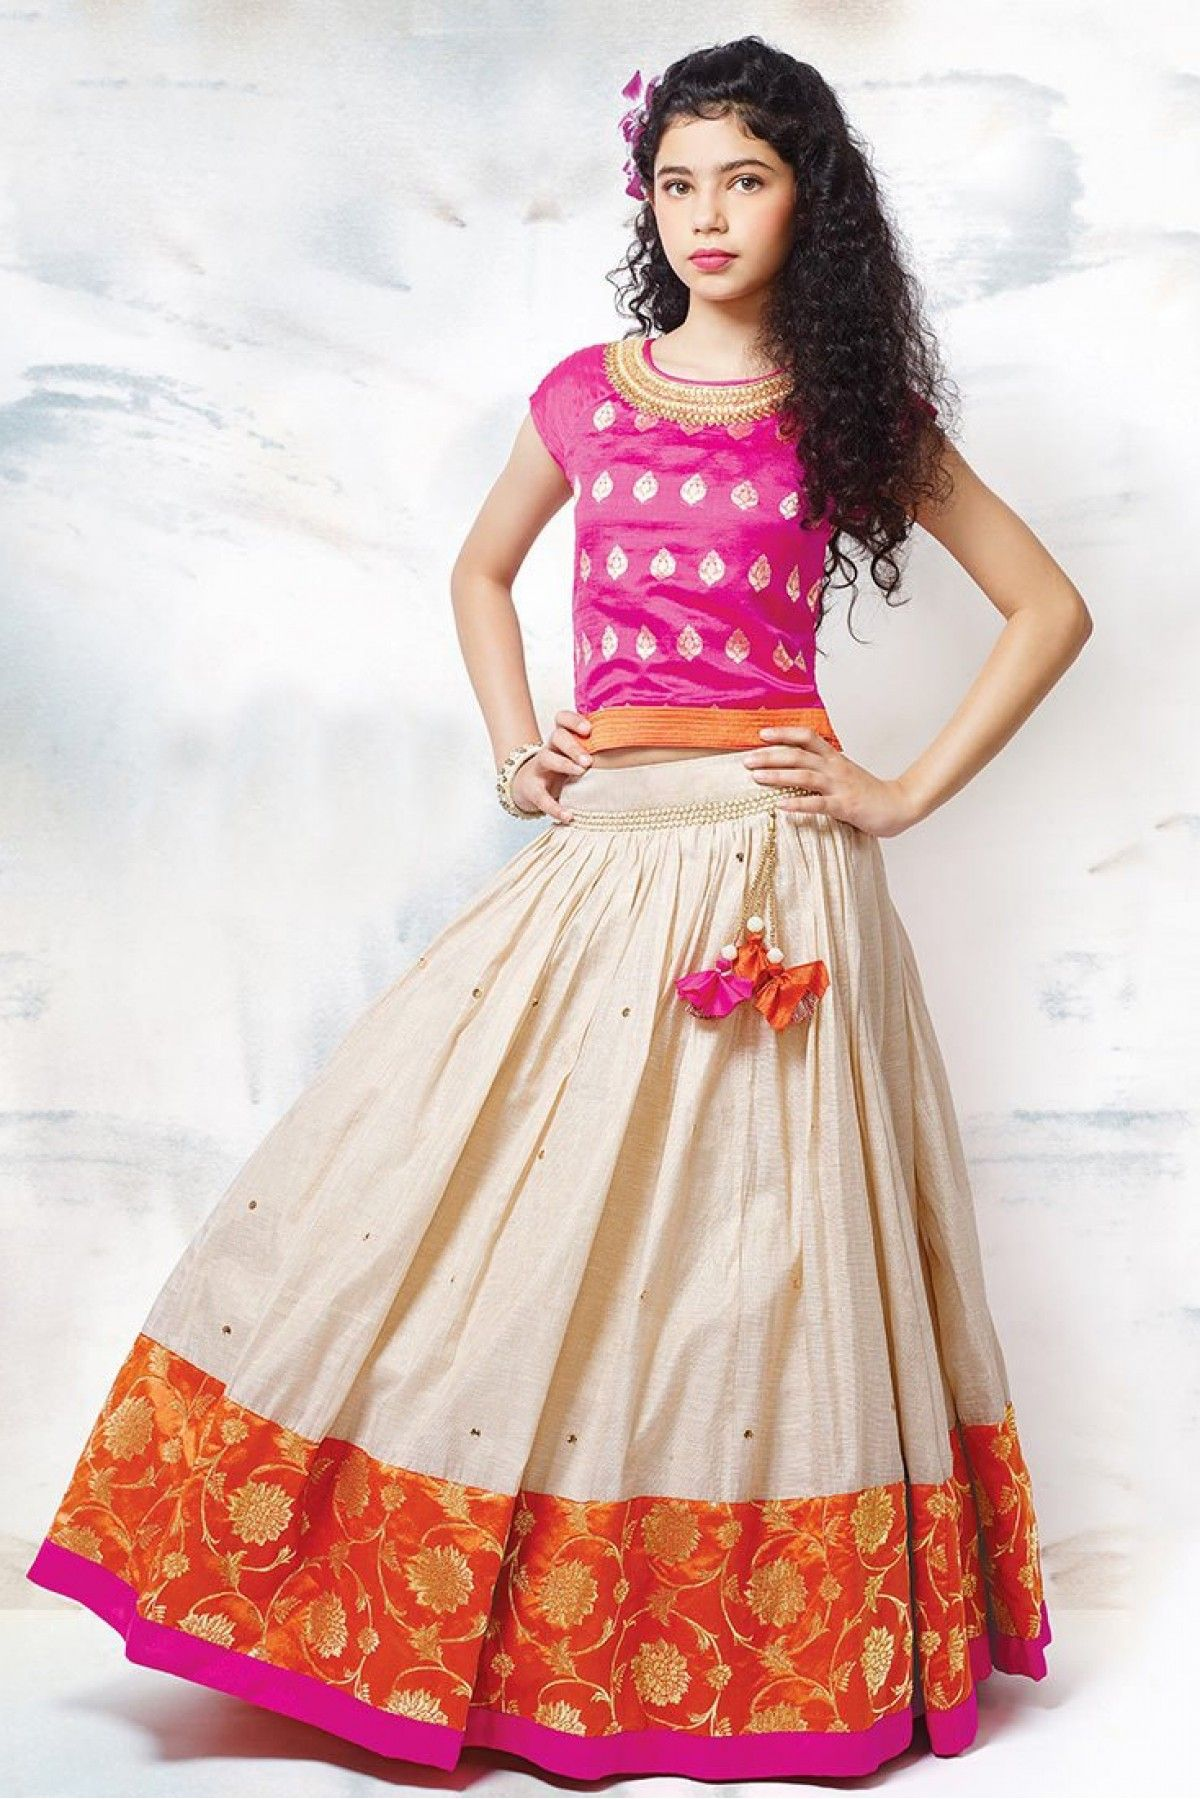 dfacf2f330 Dress up your little diva in a plush Raw Silk Lehenga Choli Pink,Cream  colour of the Lehenga Choli looks charming and pretty. This Lehenga Choli  will make ...